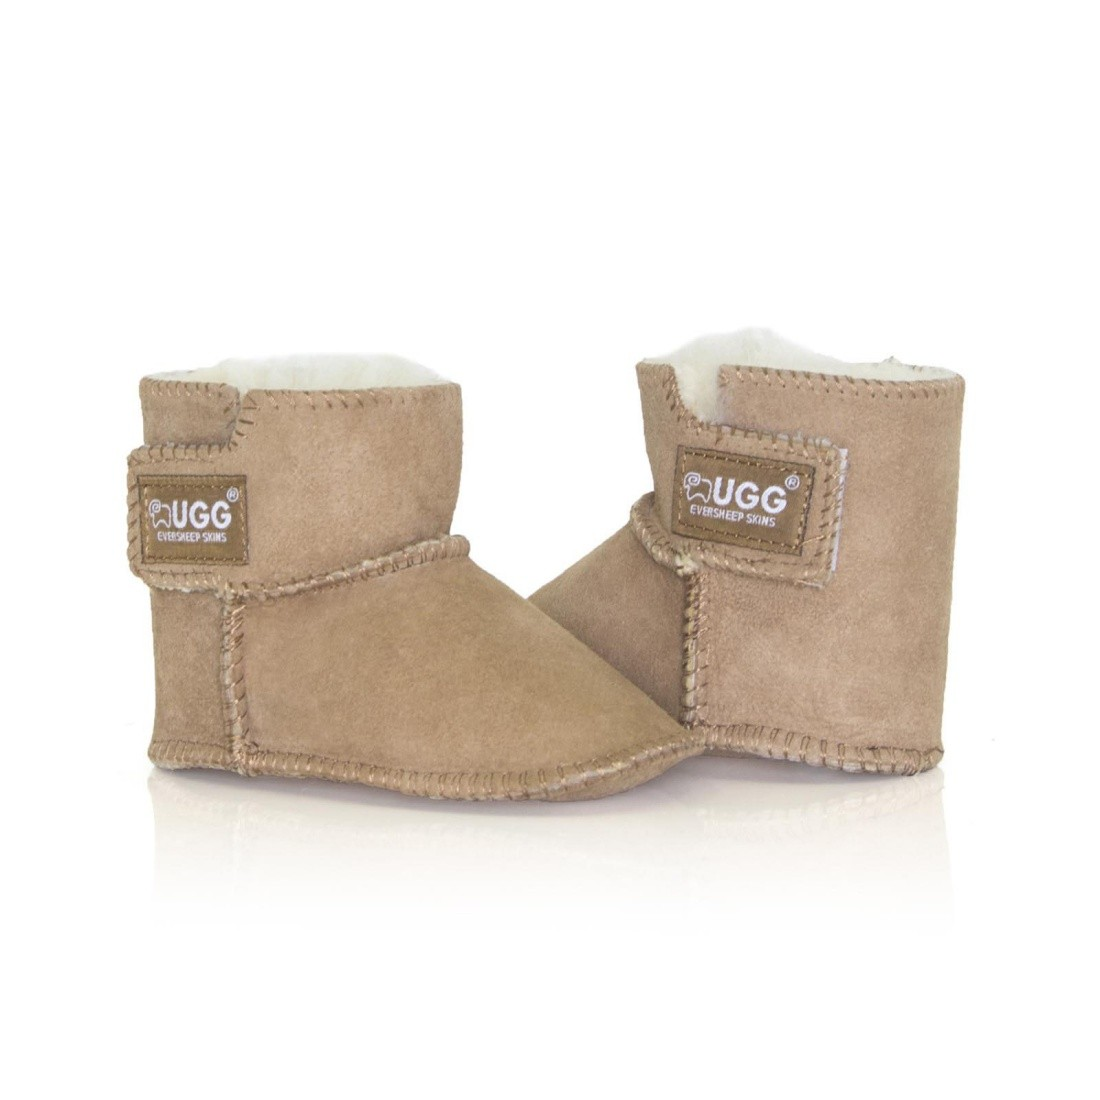 cheapest place to get uggs